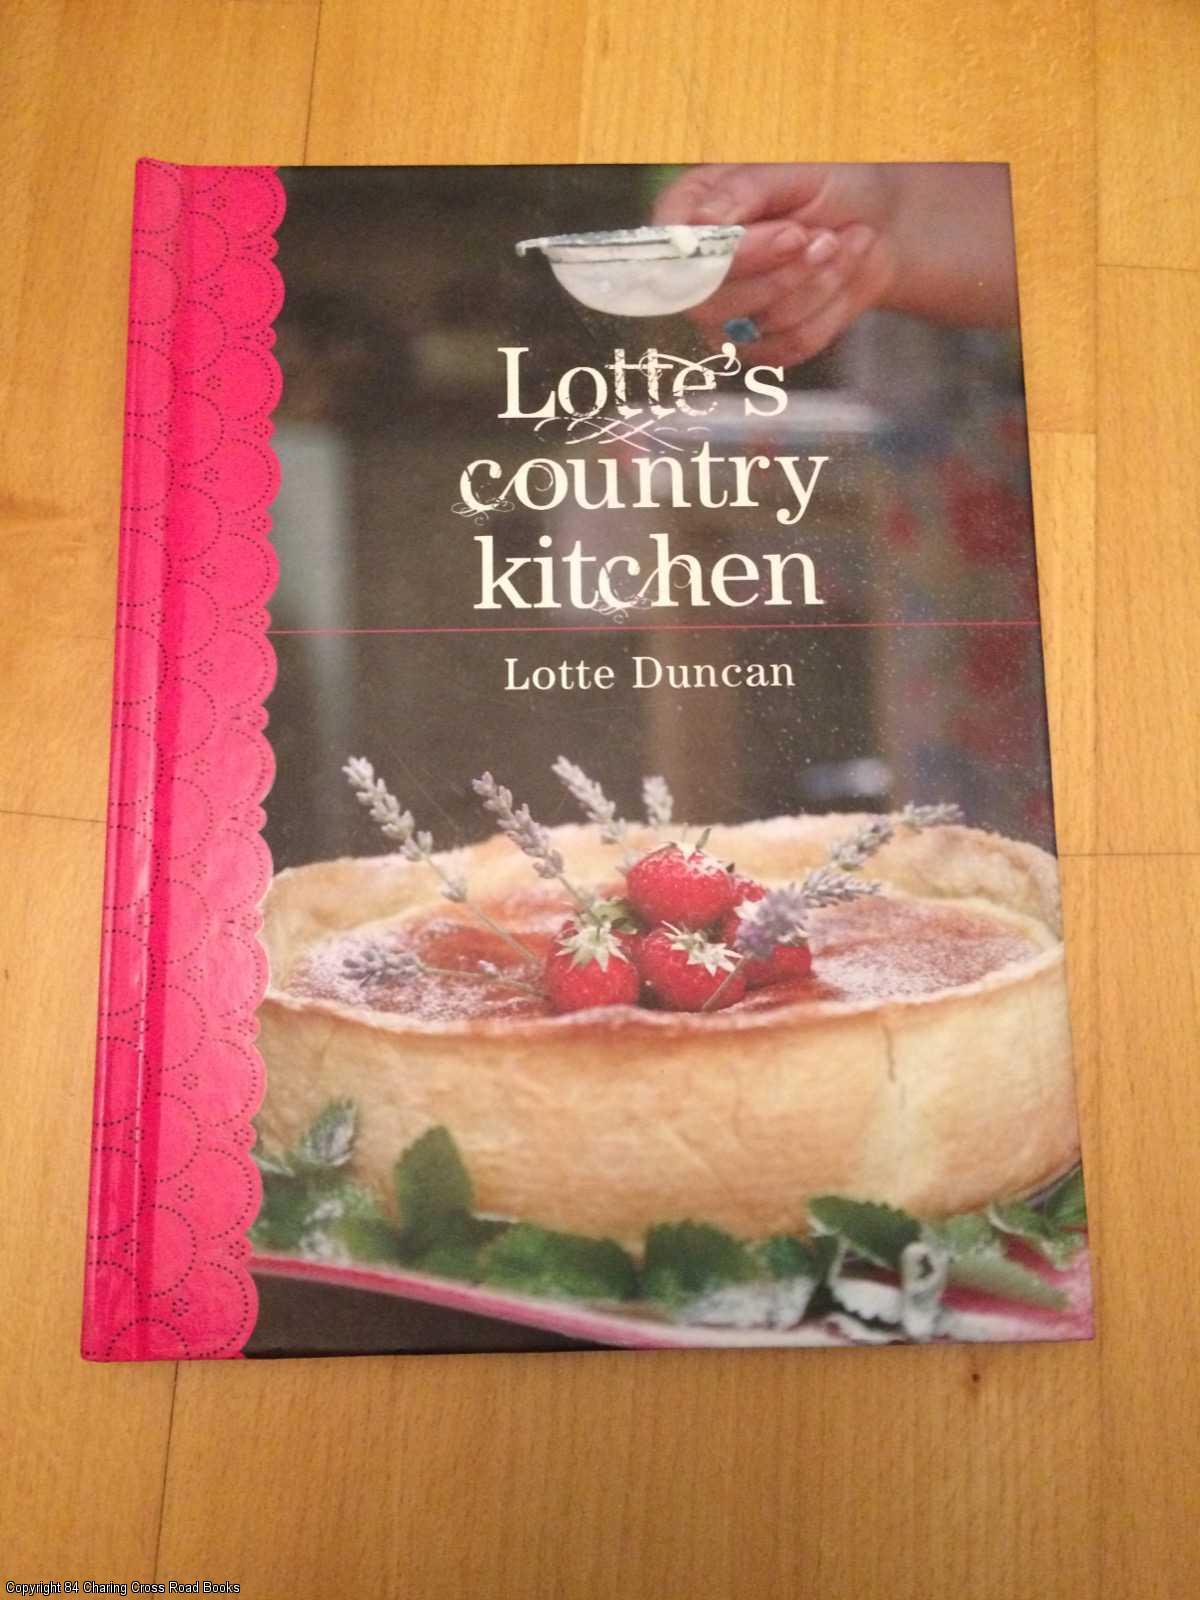 DUNCAN, LOTTE - Lotte's Country Kitchen